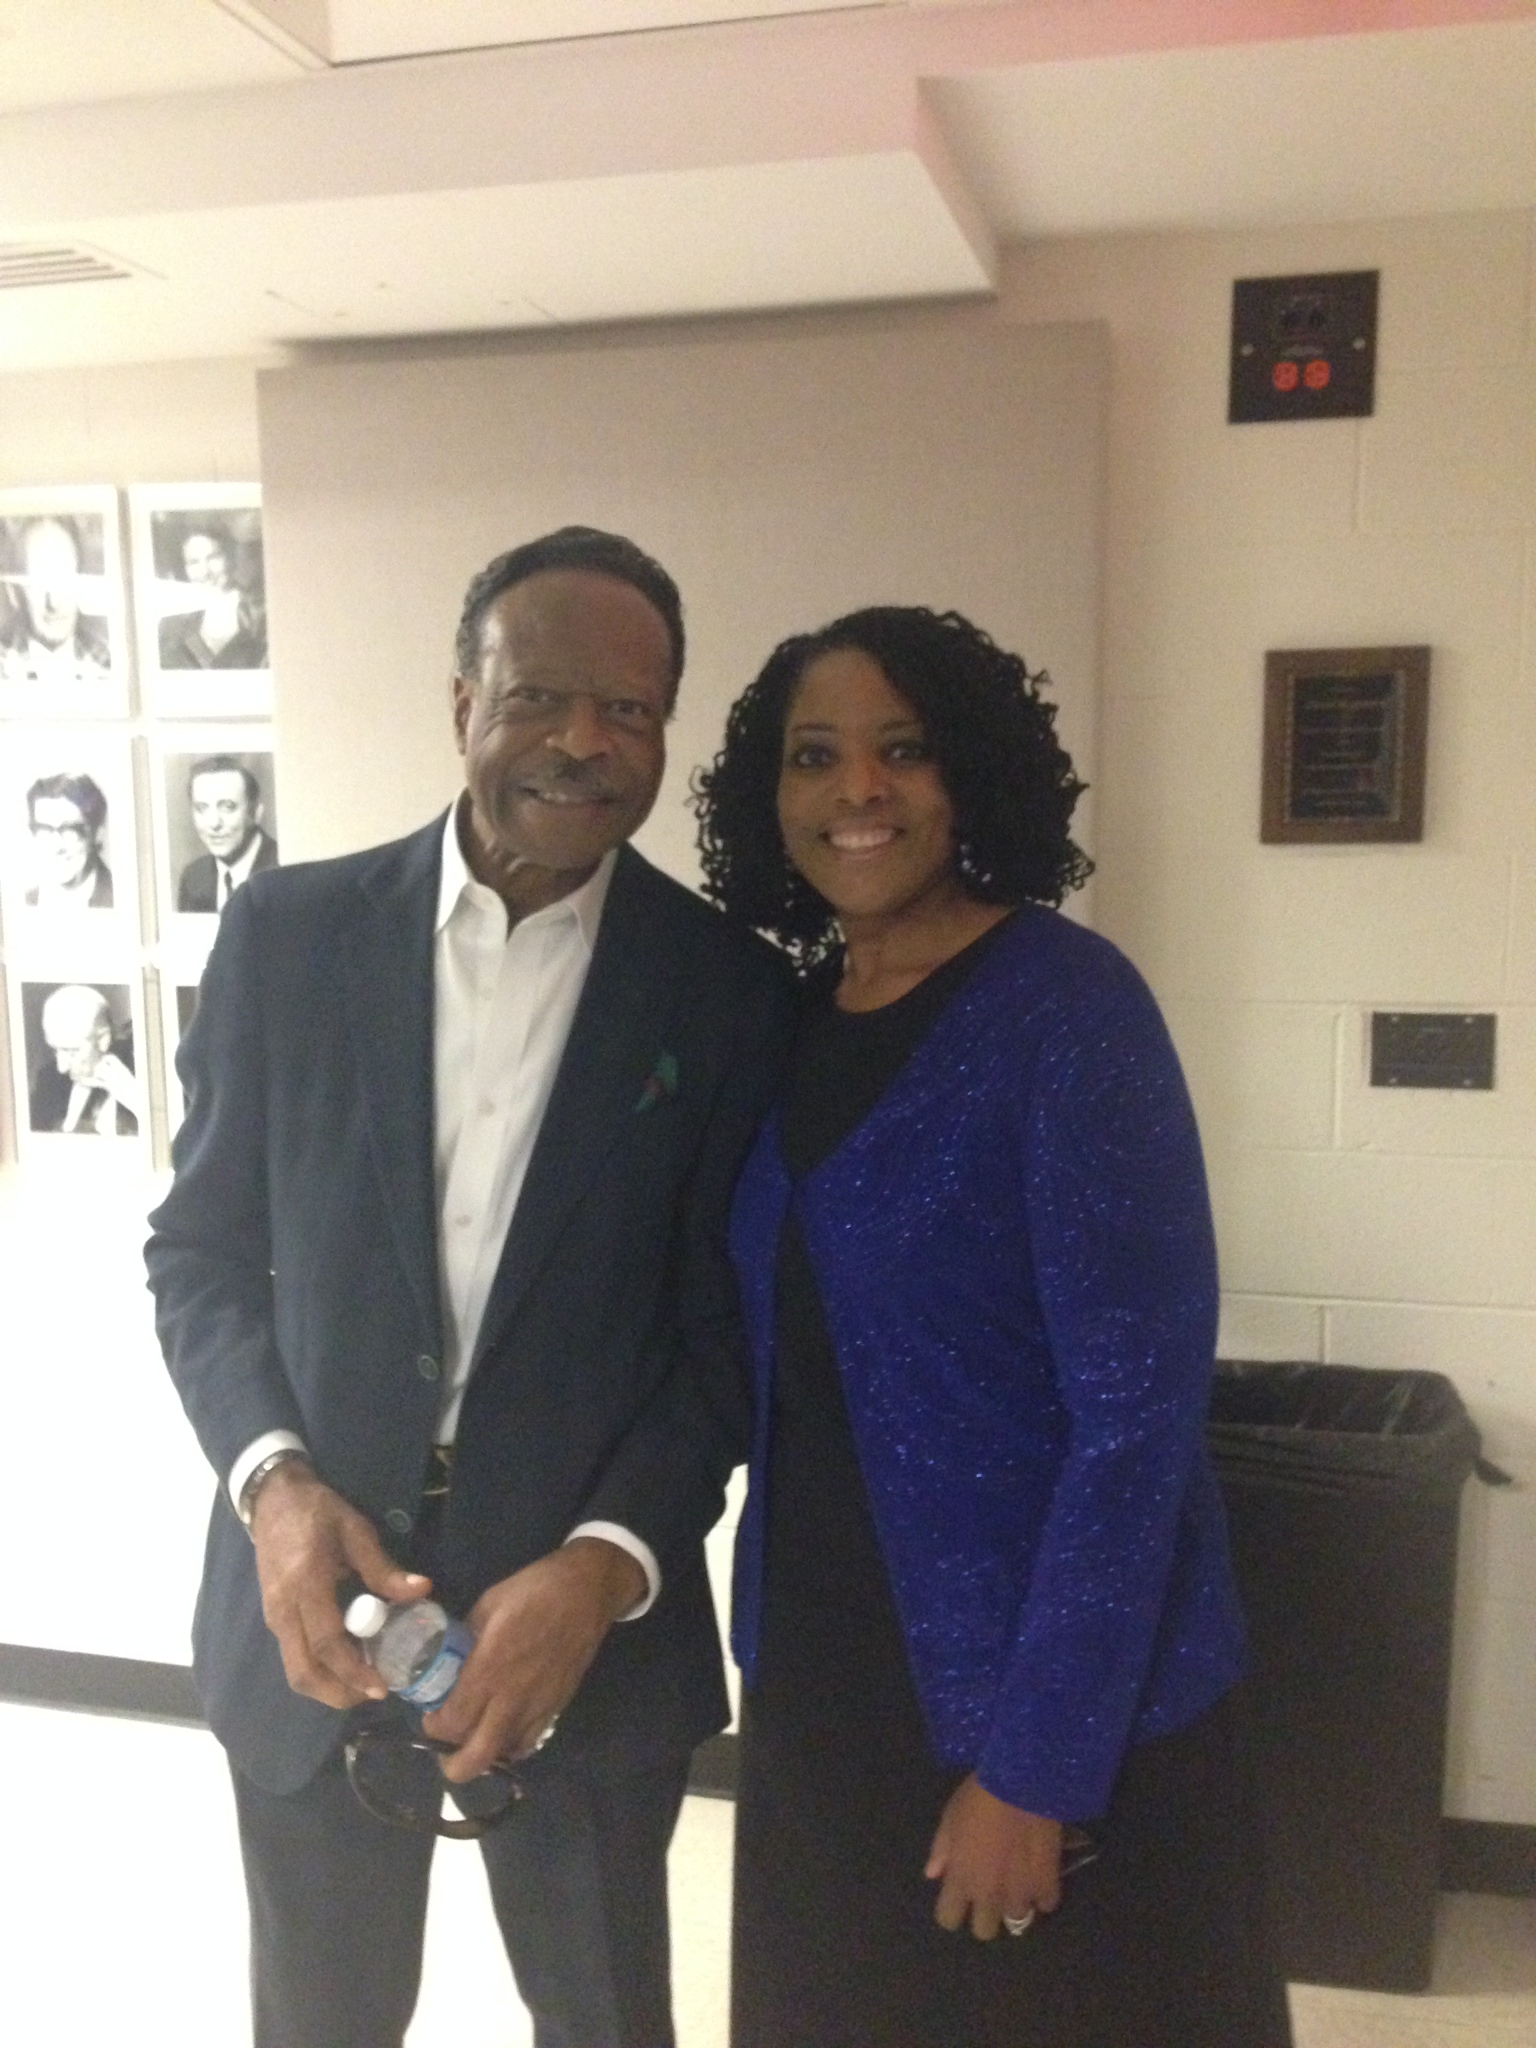 Backstage at he Kennedy Center with Dr. Edwin Hawkins